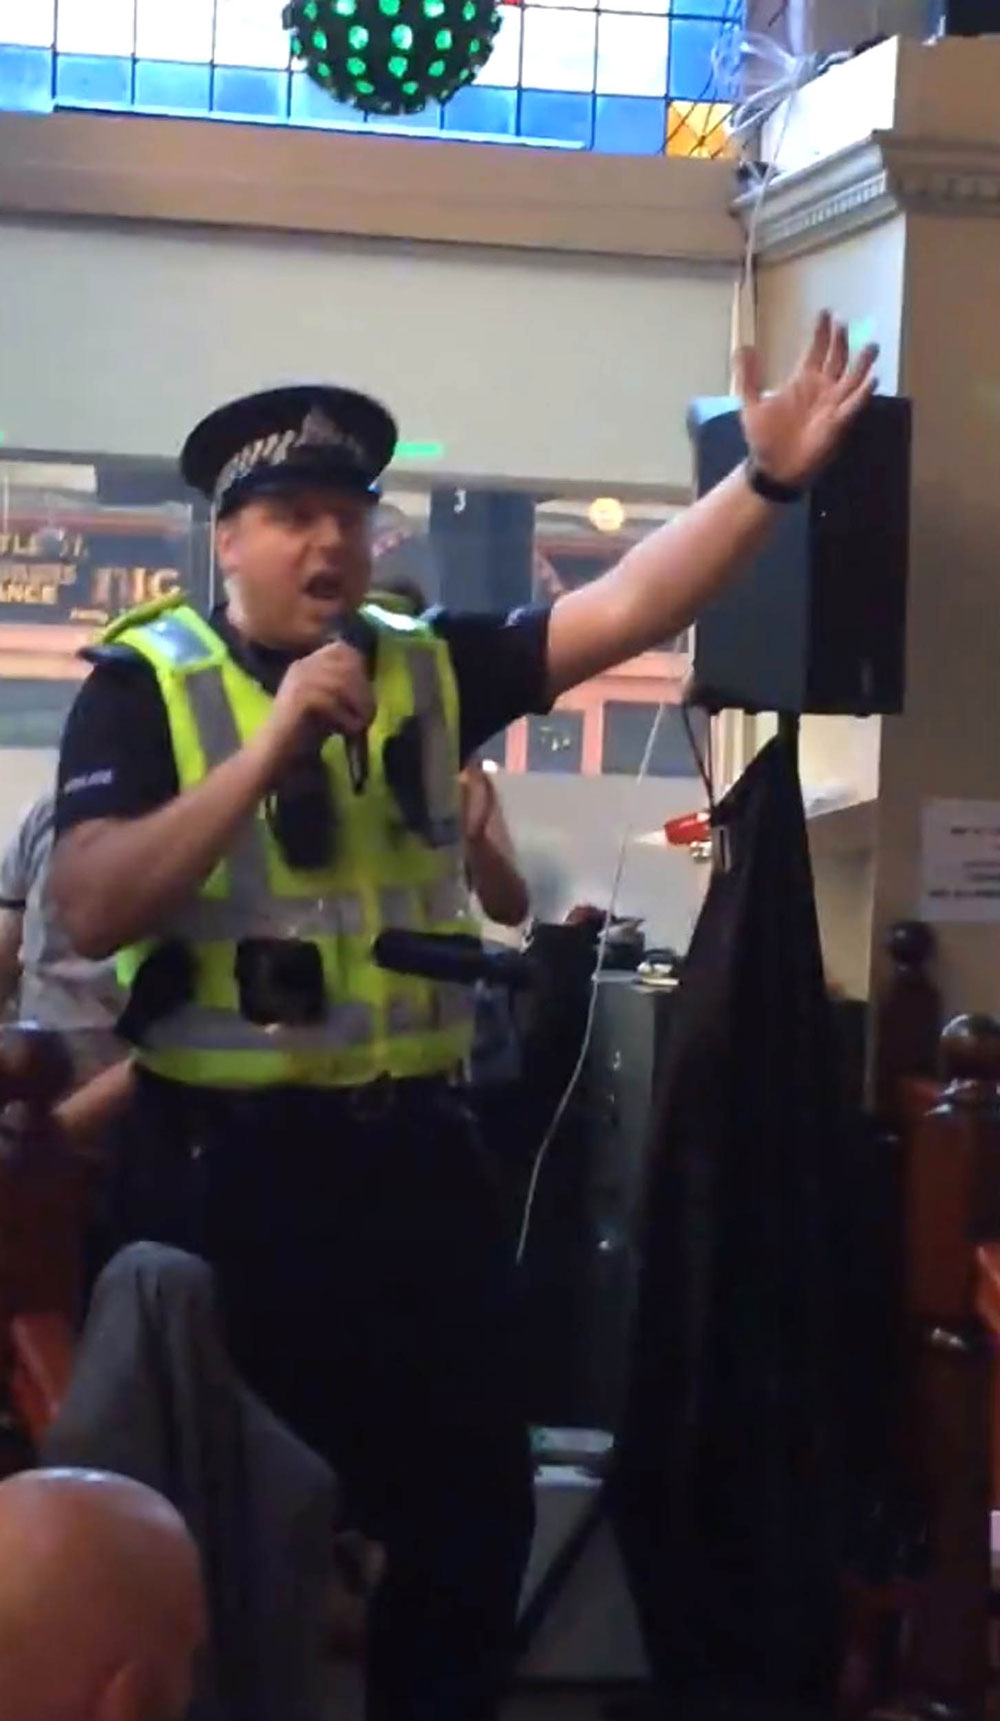 Sgt Harris waved his arms about as he sang